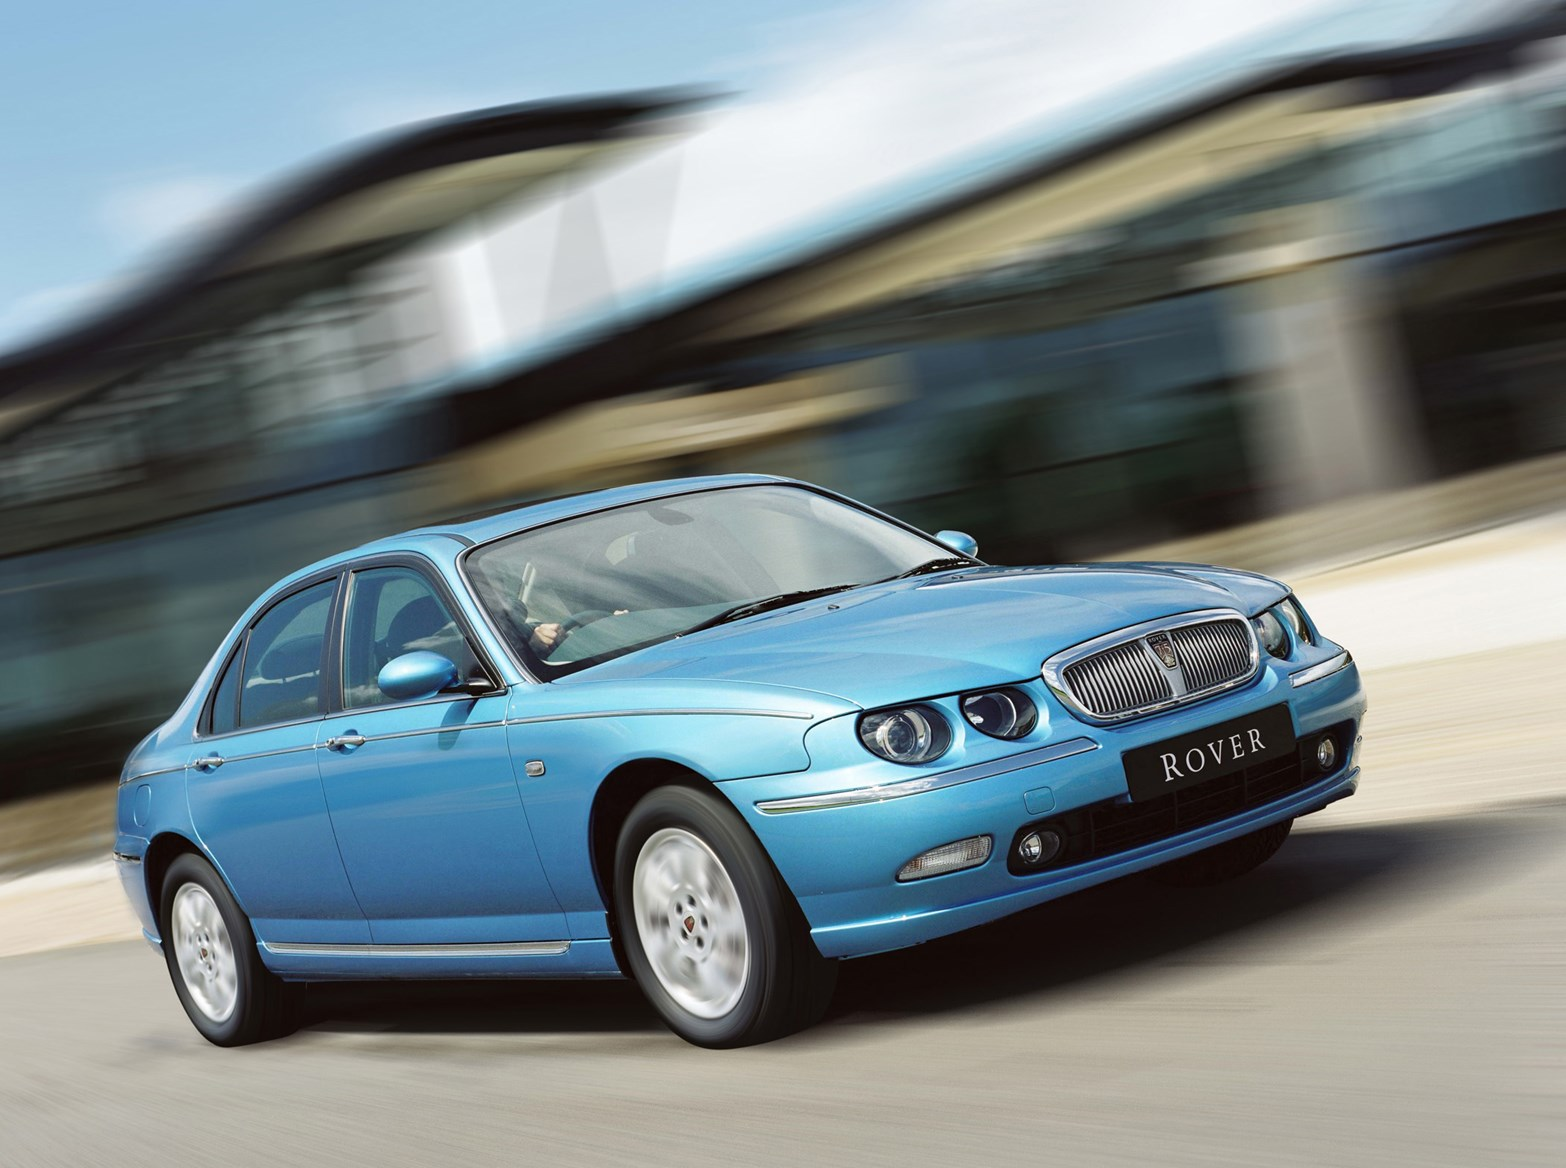 Used Audi Cars For Sale >> Rover 75 Saloon Review (1999 - 2004) | Parkers